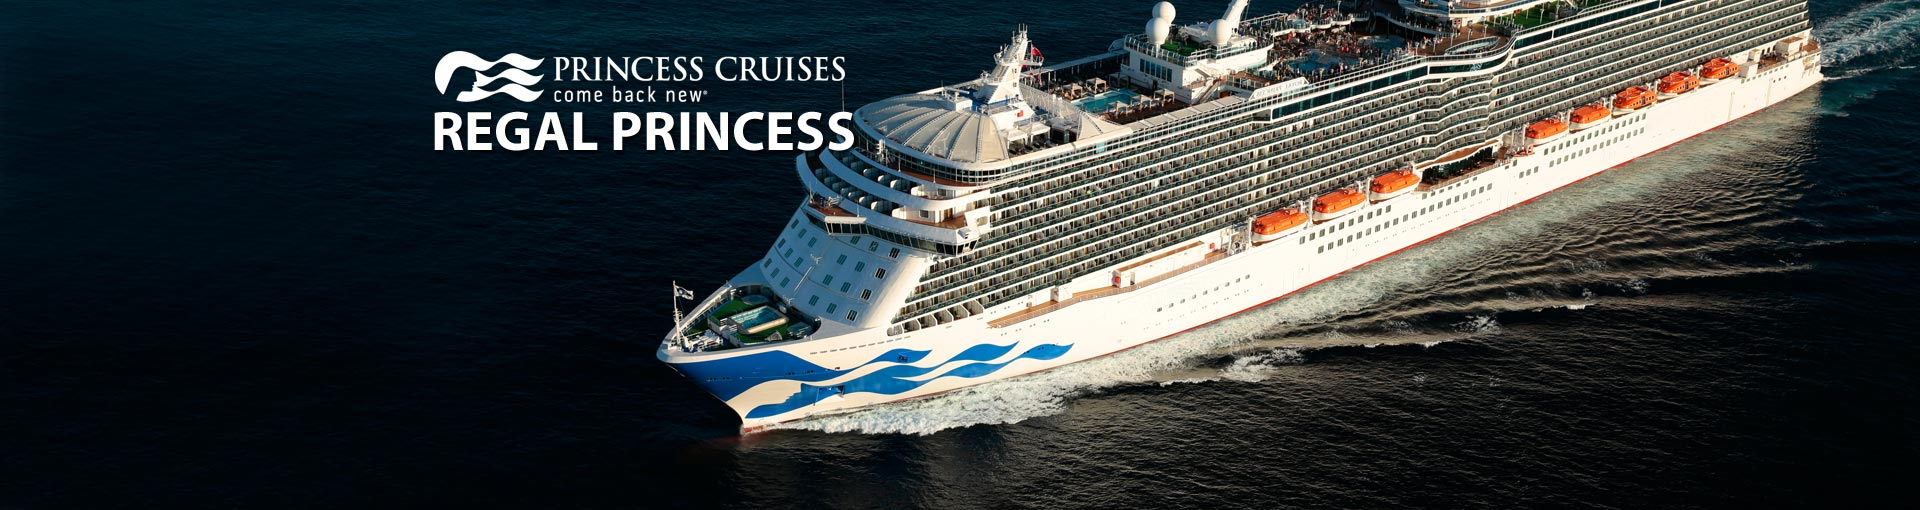 Princess Cruises Regal Princess cruise ship